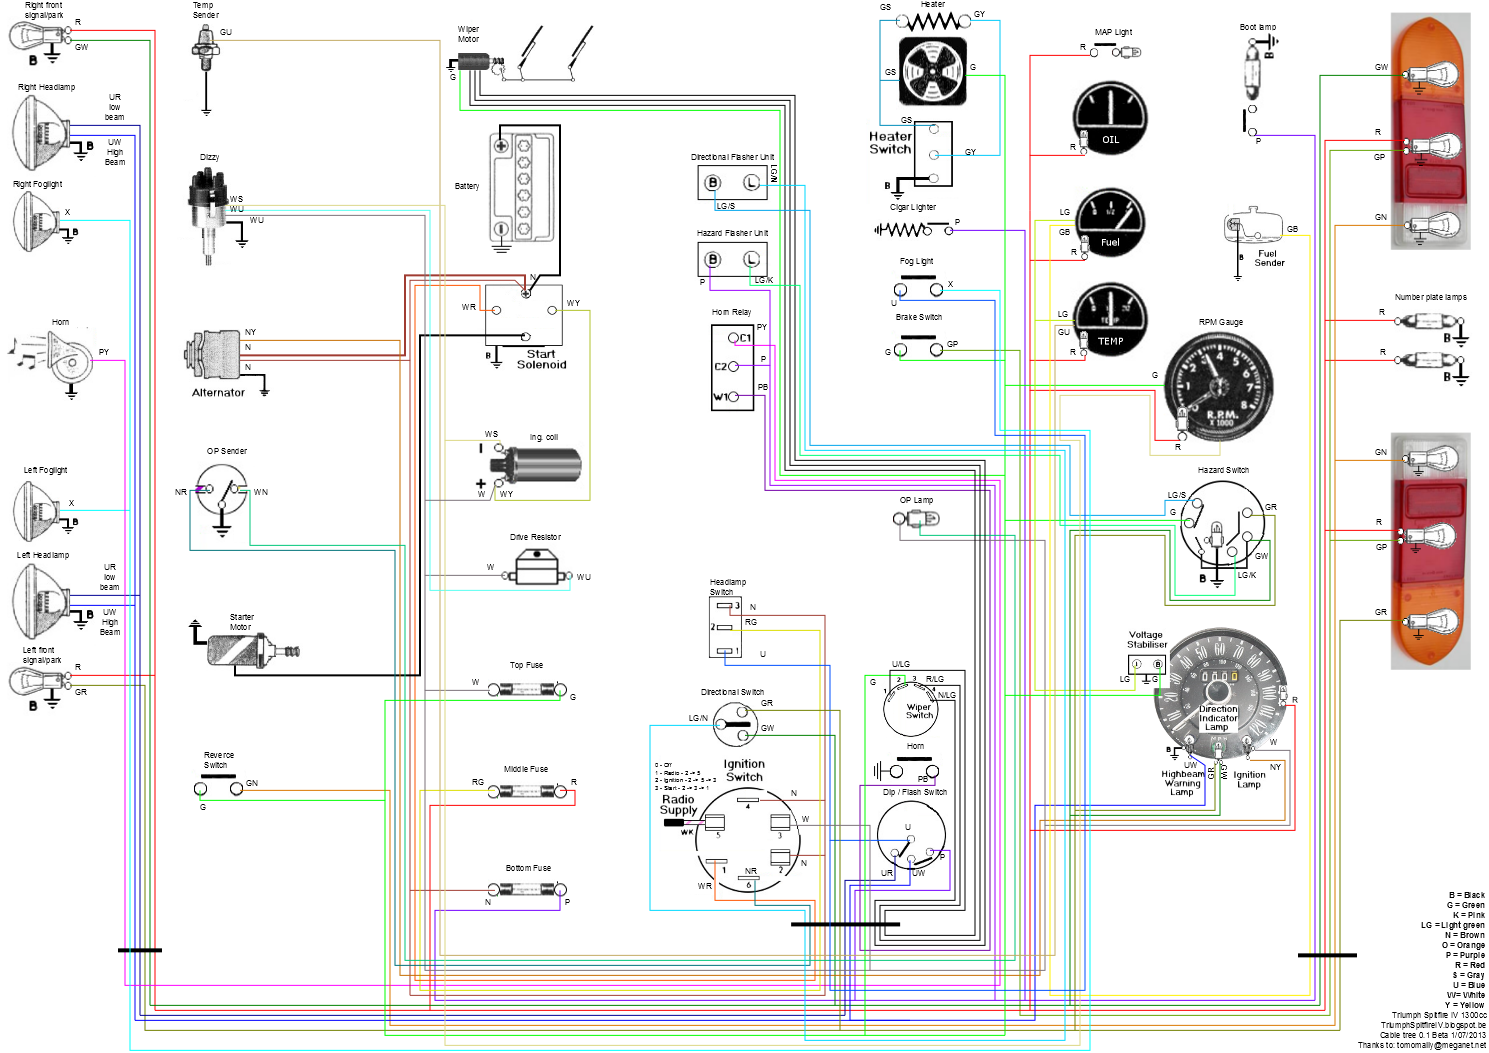 spitfire iv wiring diagram mk4 wiring diagram mk4 tdi wiring diagram \u2022 wiring diagrams j 2005 E55 AMG Performance Parts at readyjetset.co